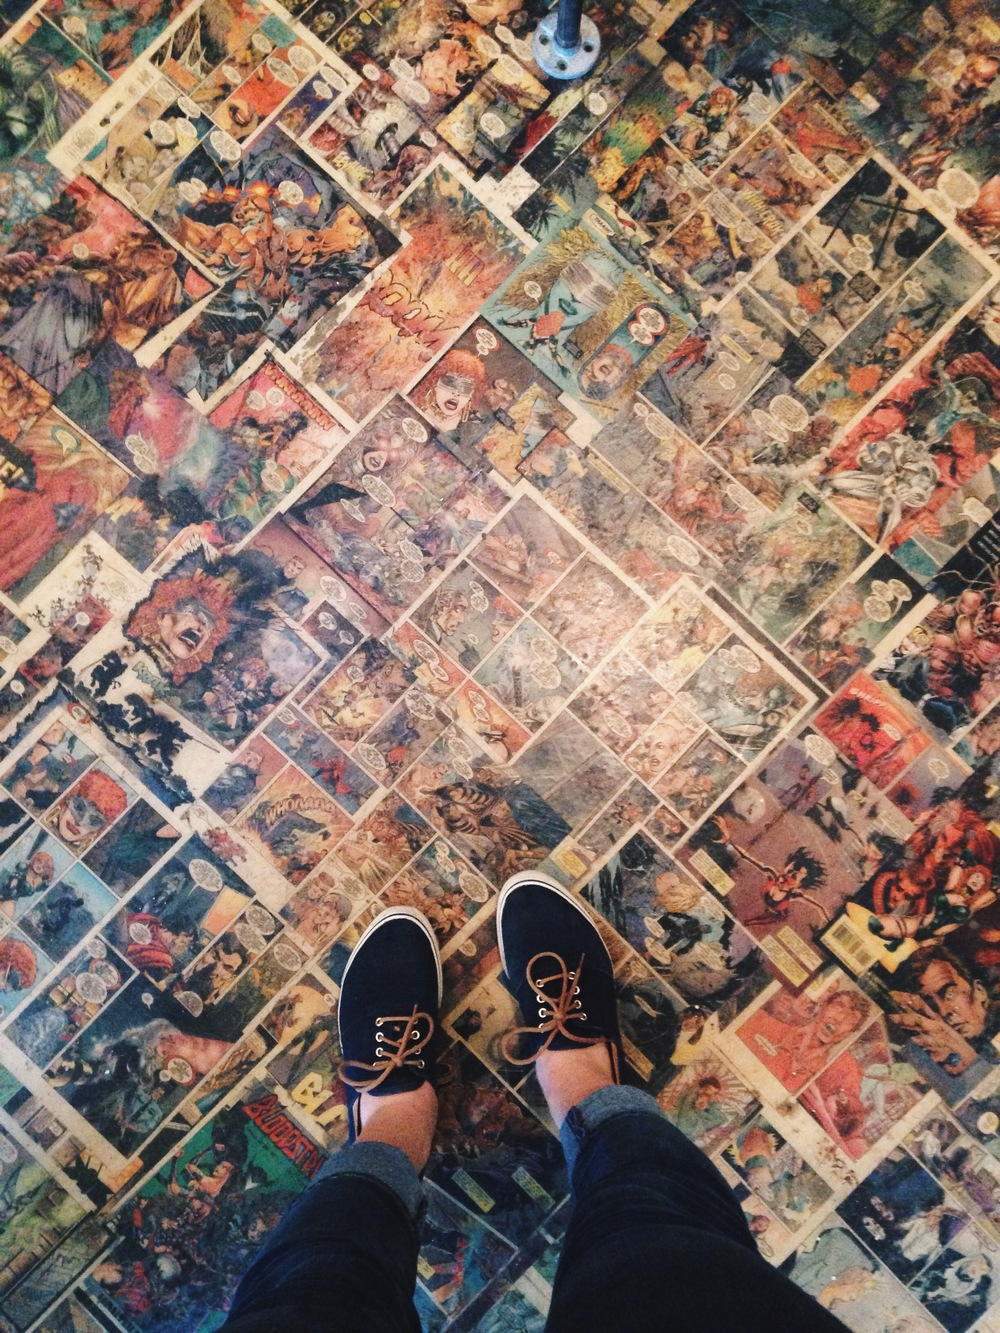 How cool is this floor?!